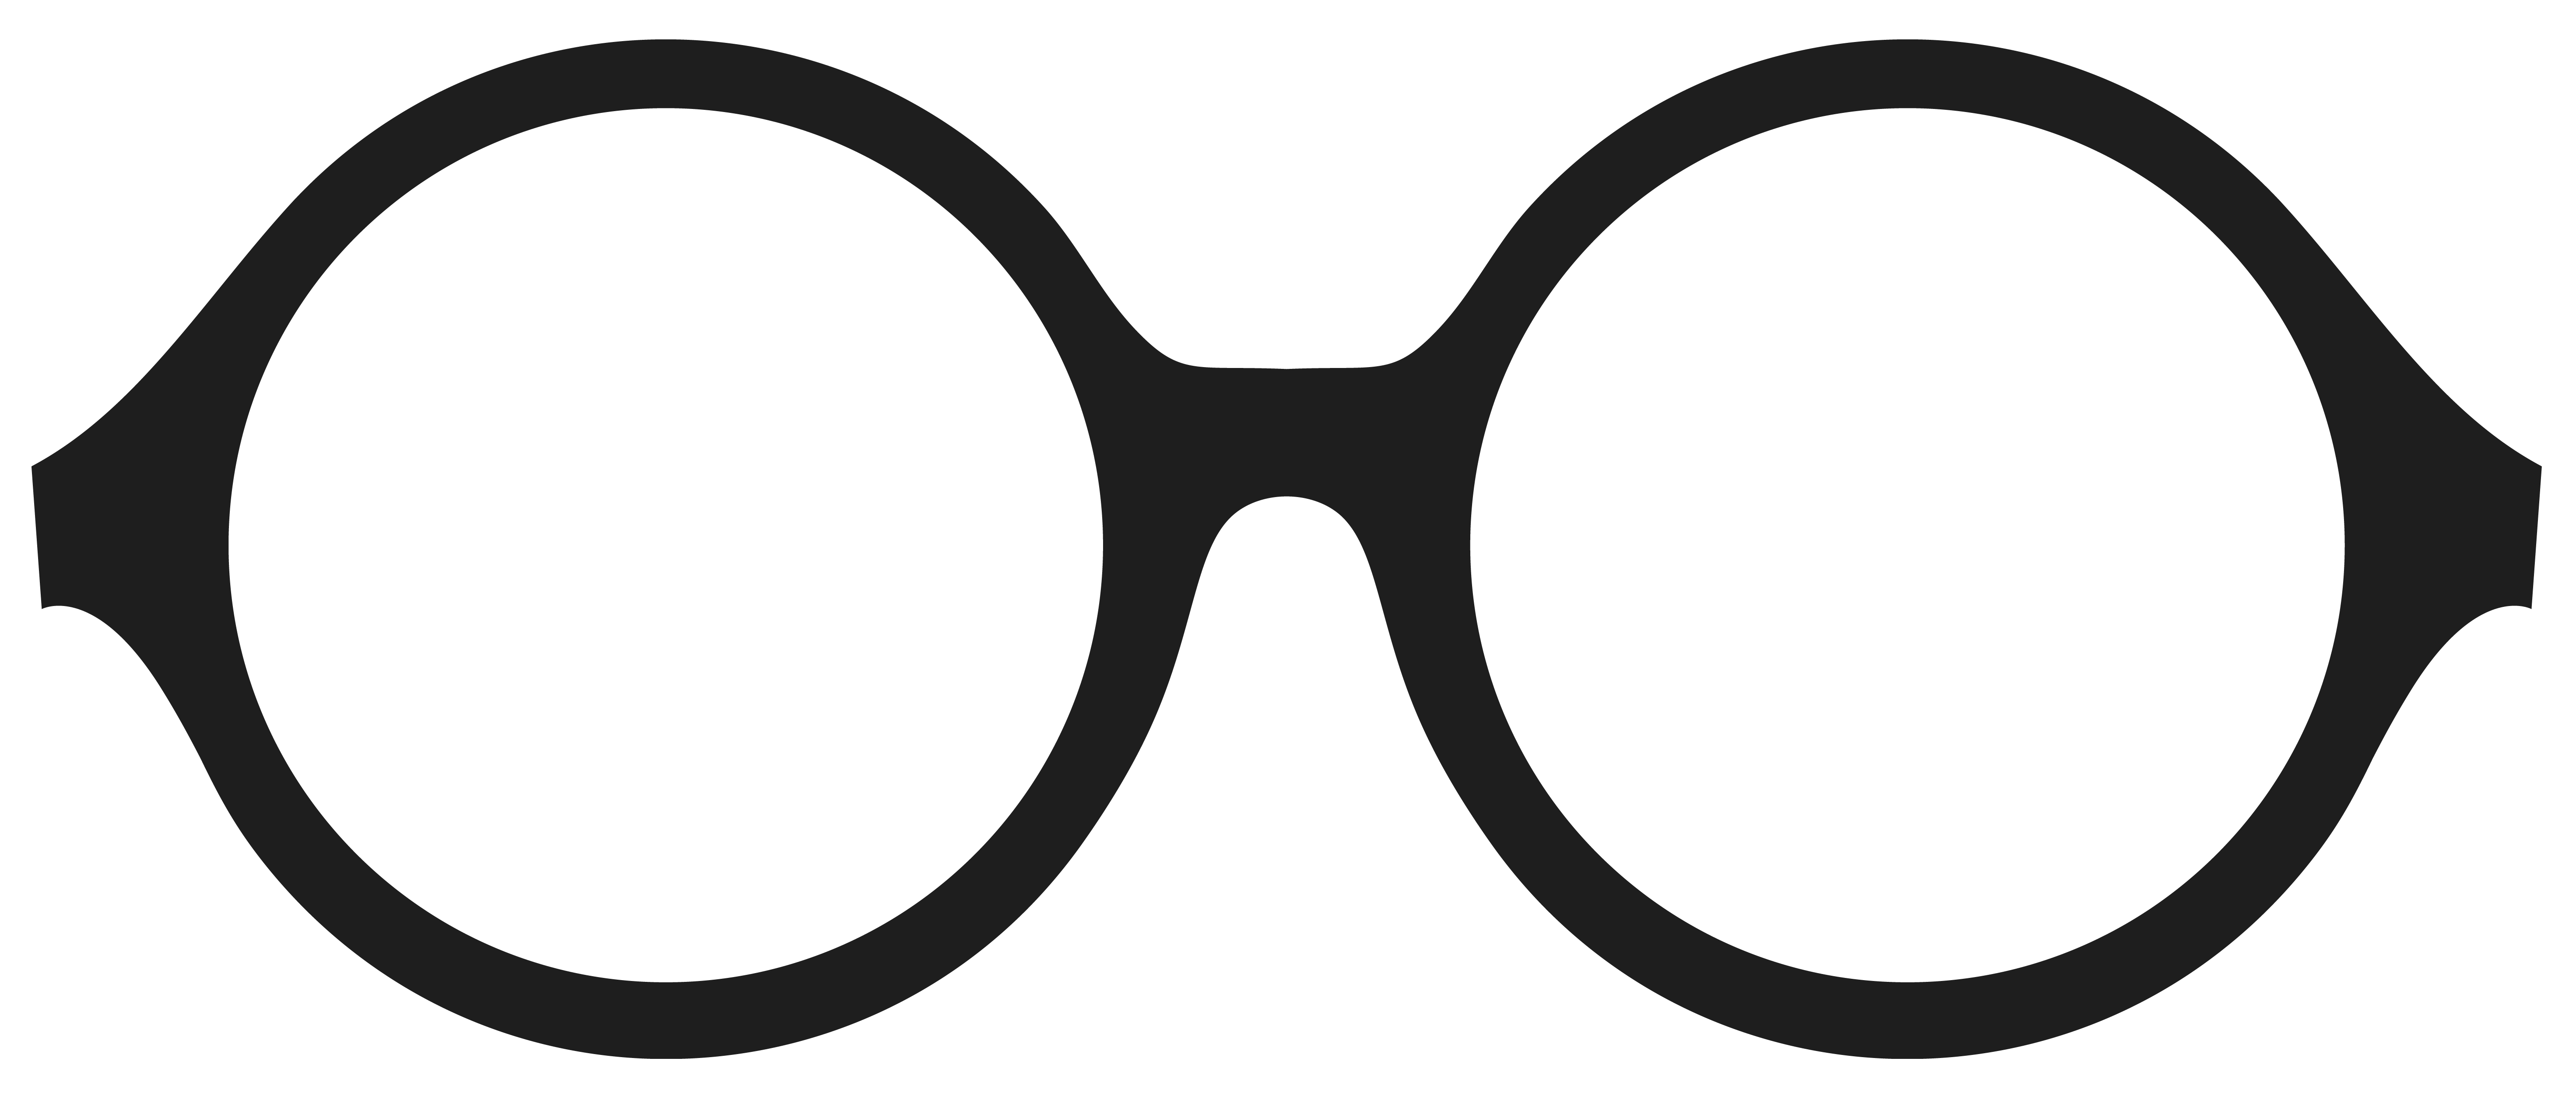 Black Glasses Clipart | Free download on ClipArtMag